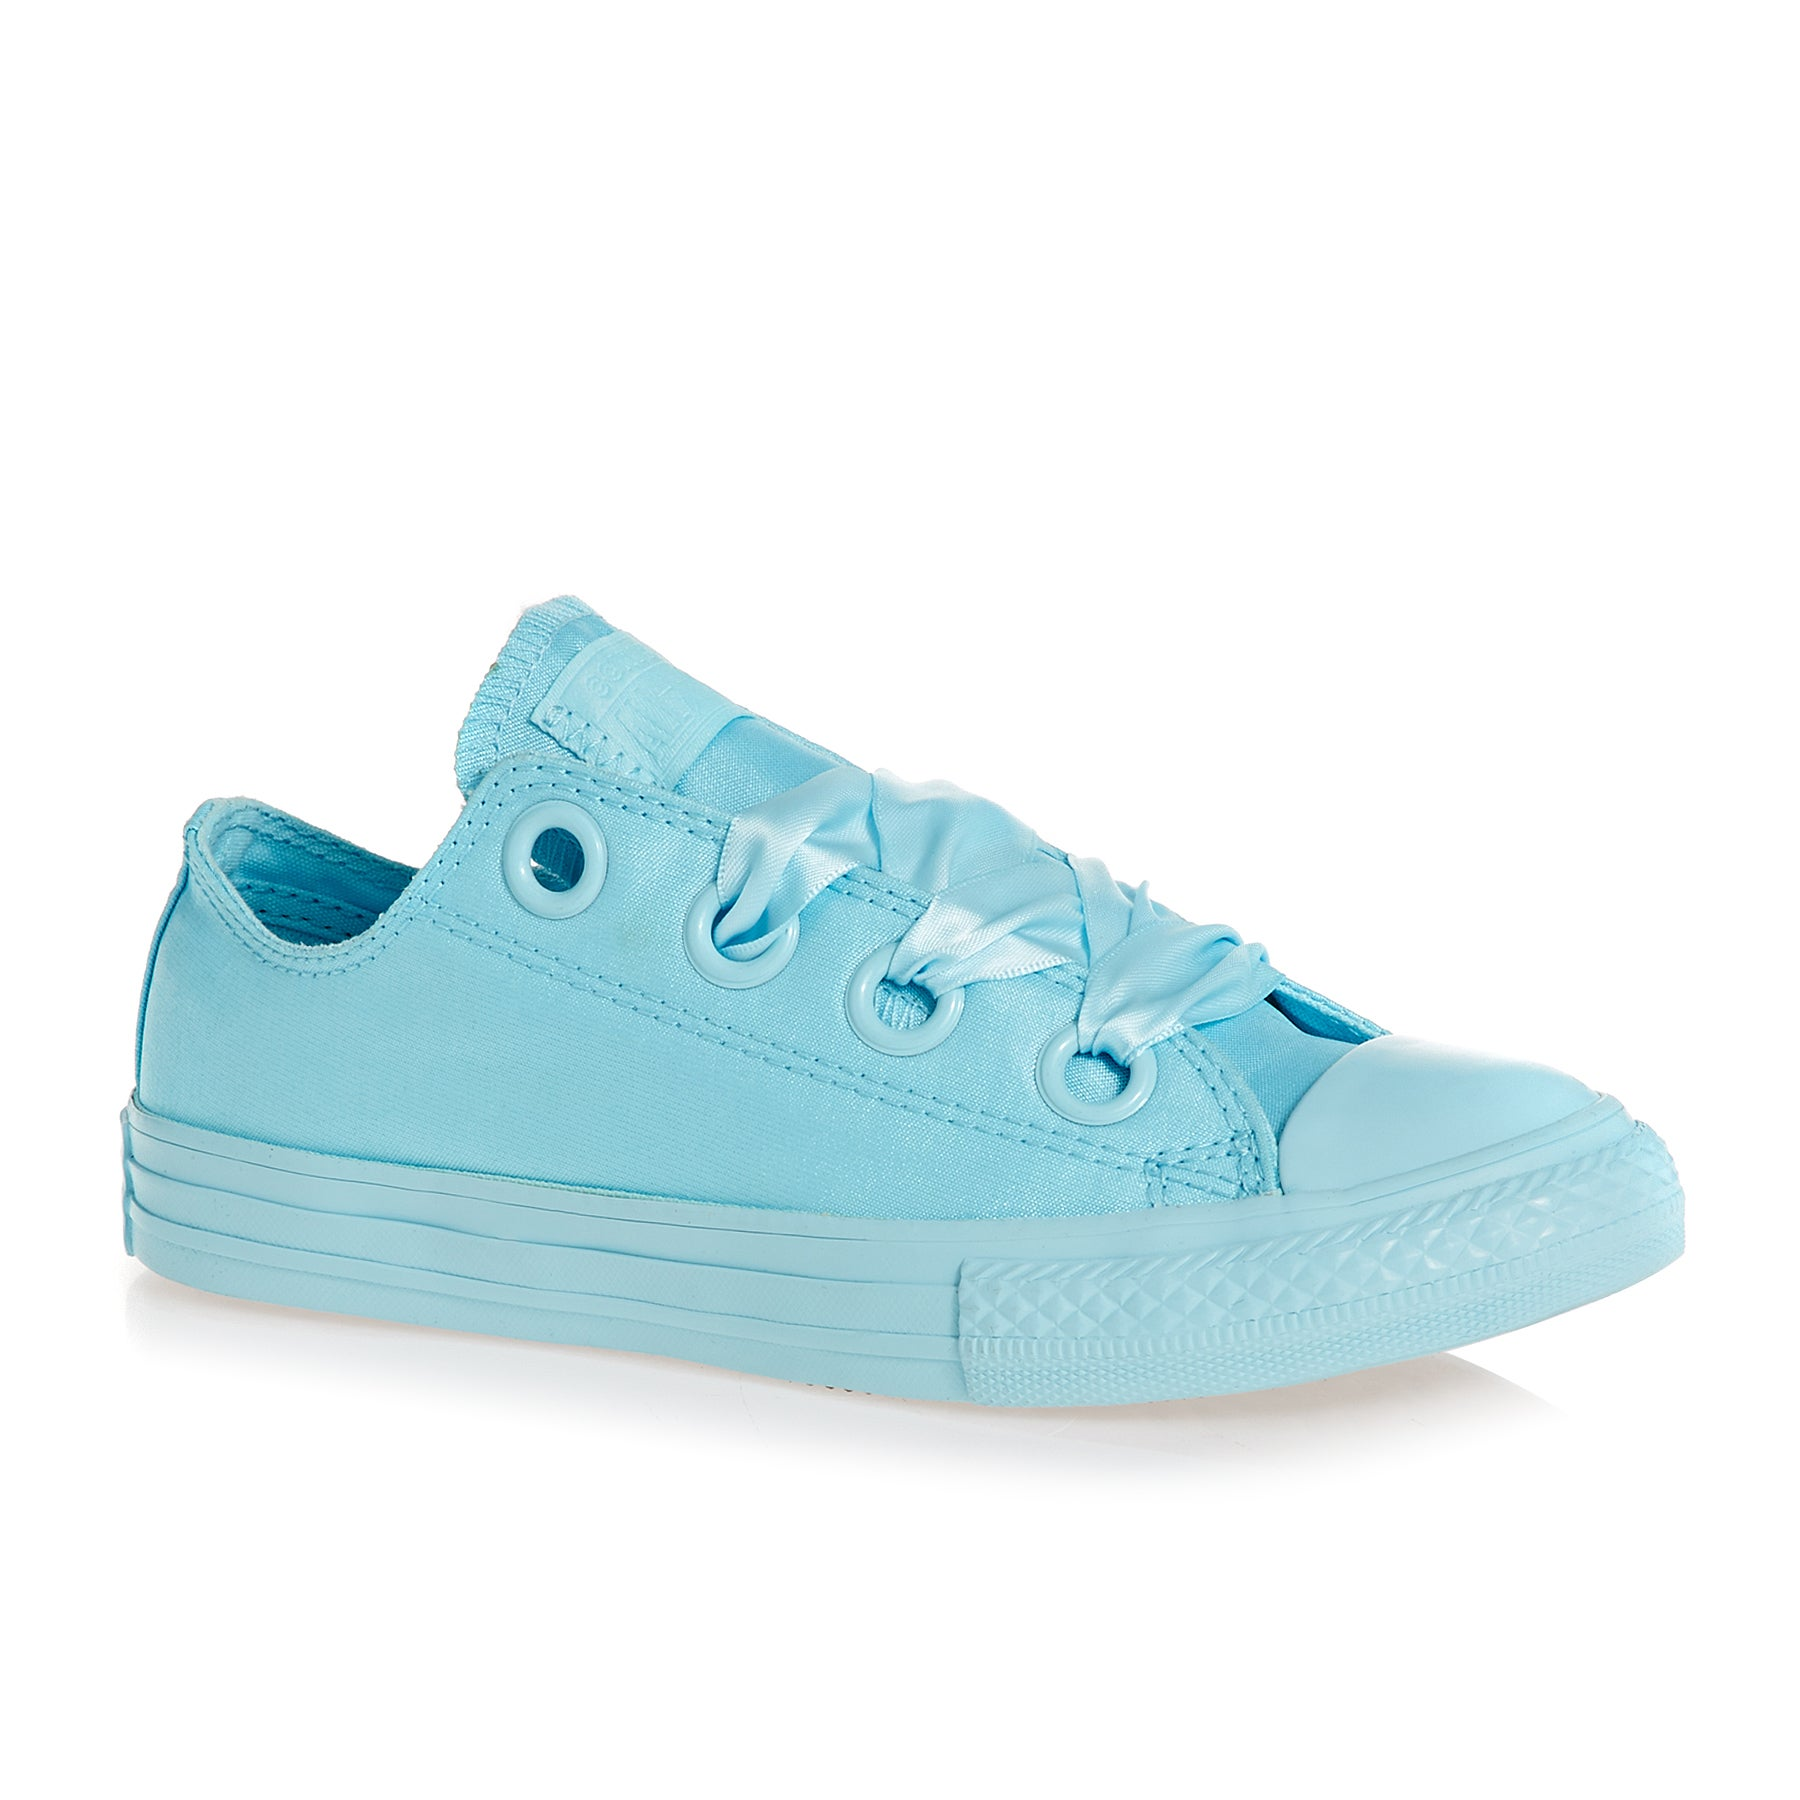 Converse Chuck Taylor All Star Big Eyelets Ox Girls Shoes | Free Delivery* on All Orders